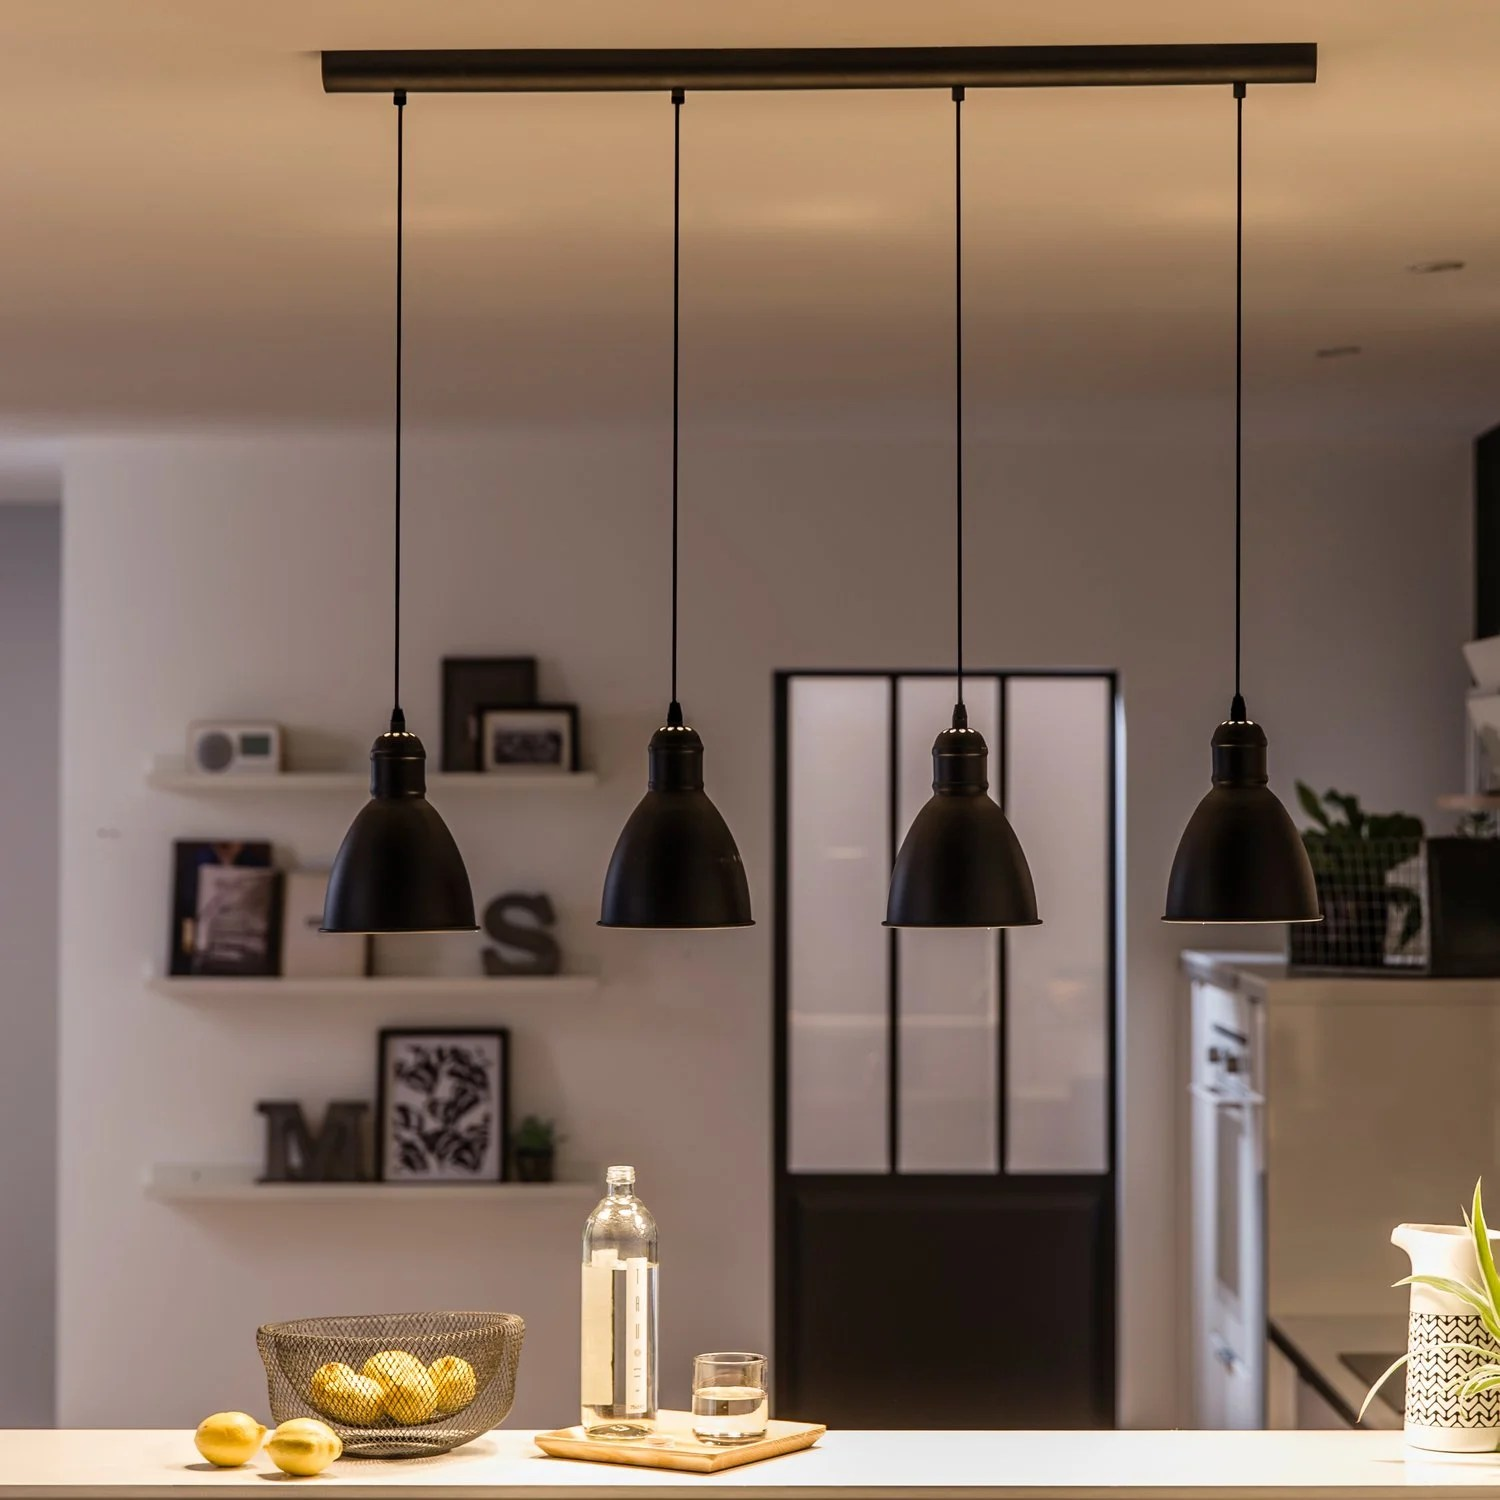 Suspensions Cuisine Une Suspension 4 En 1 Au Style Industriel Leroy Merlin